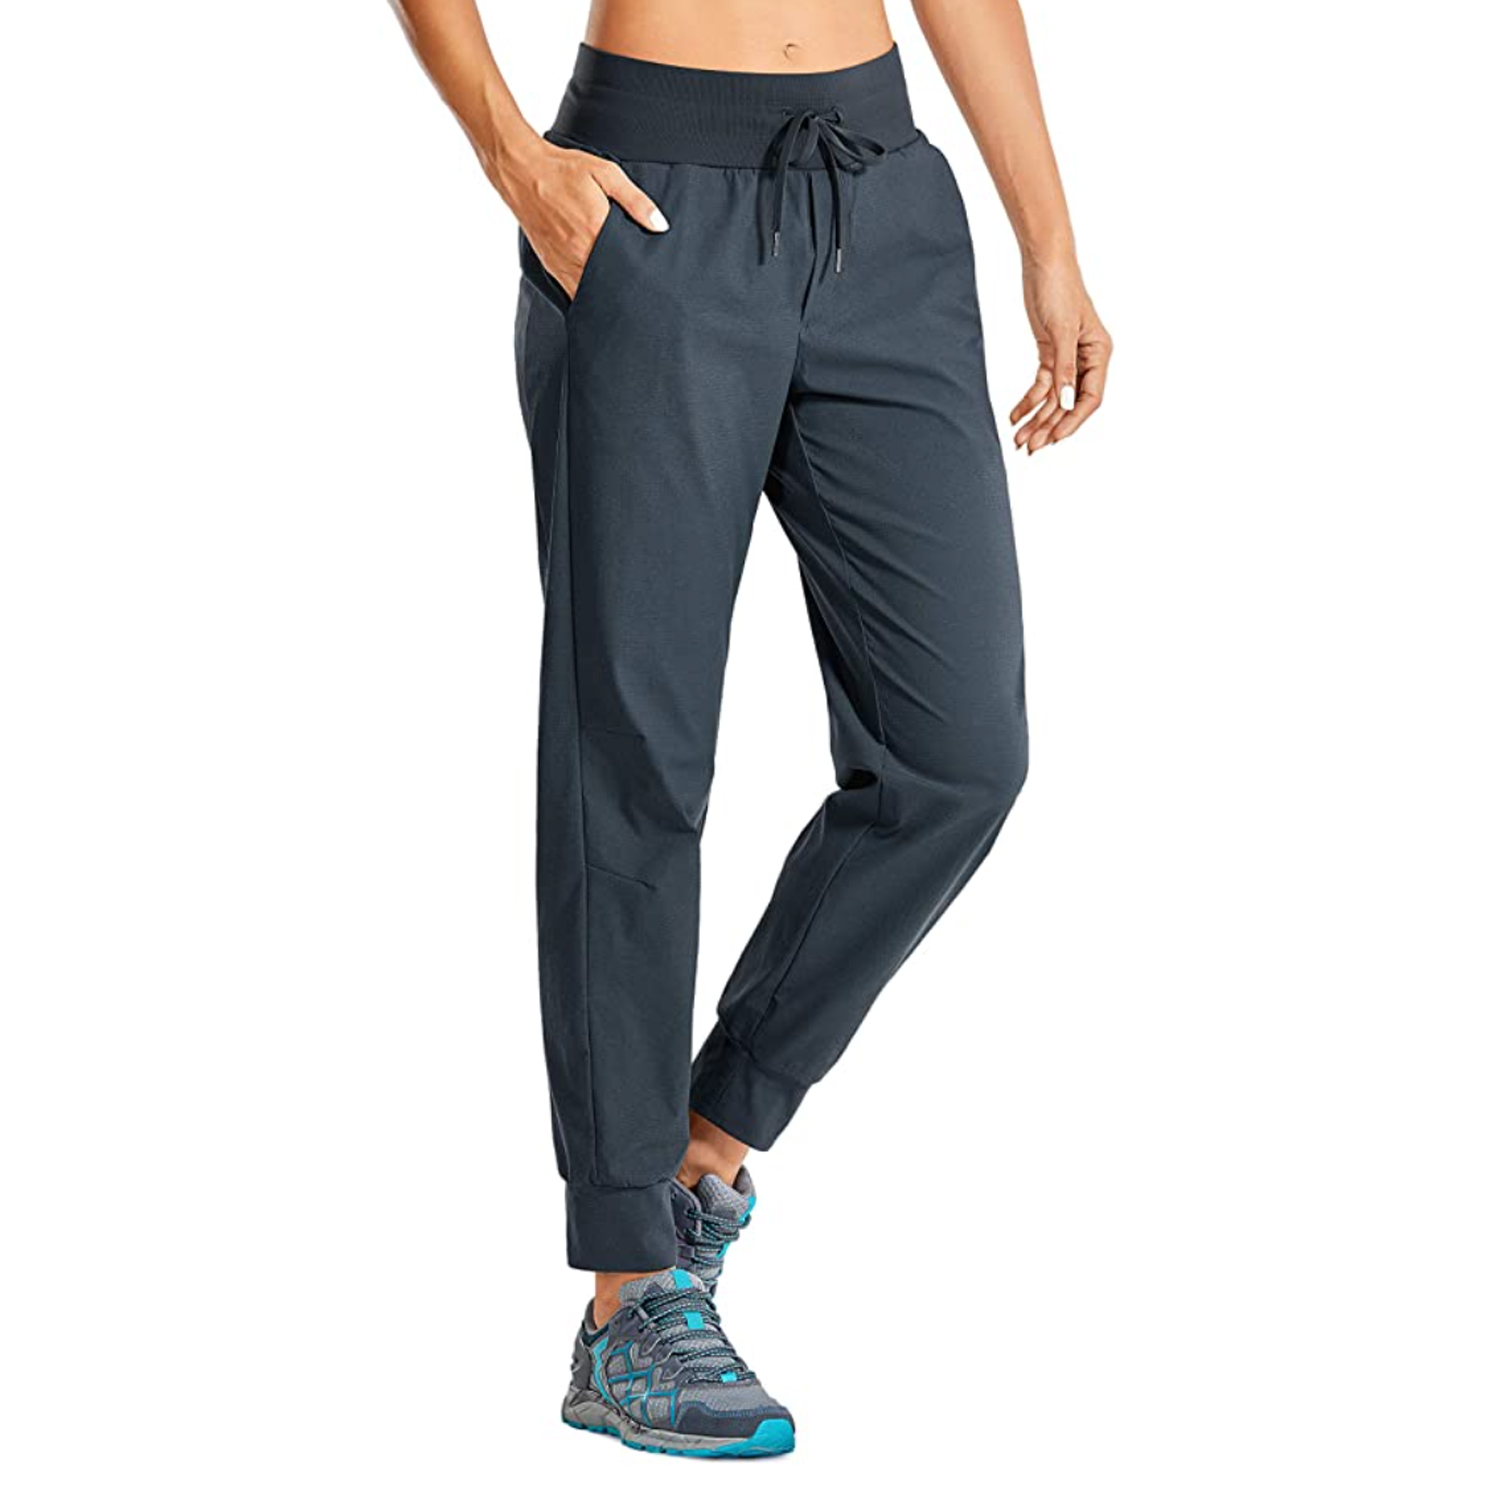 woman wearing ink blue hiking pants and blue tennis shoes